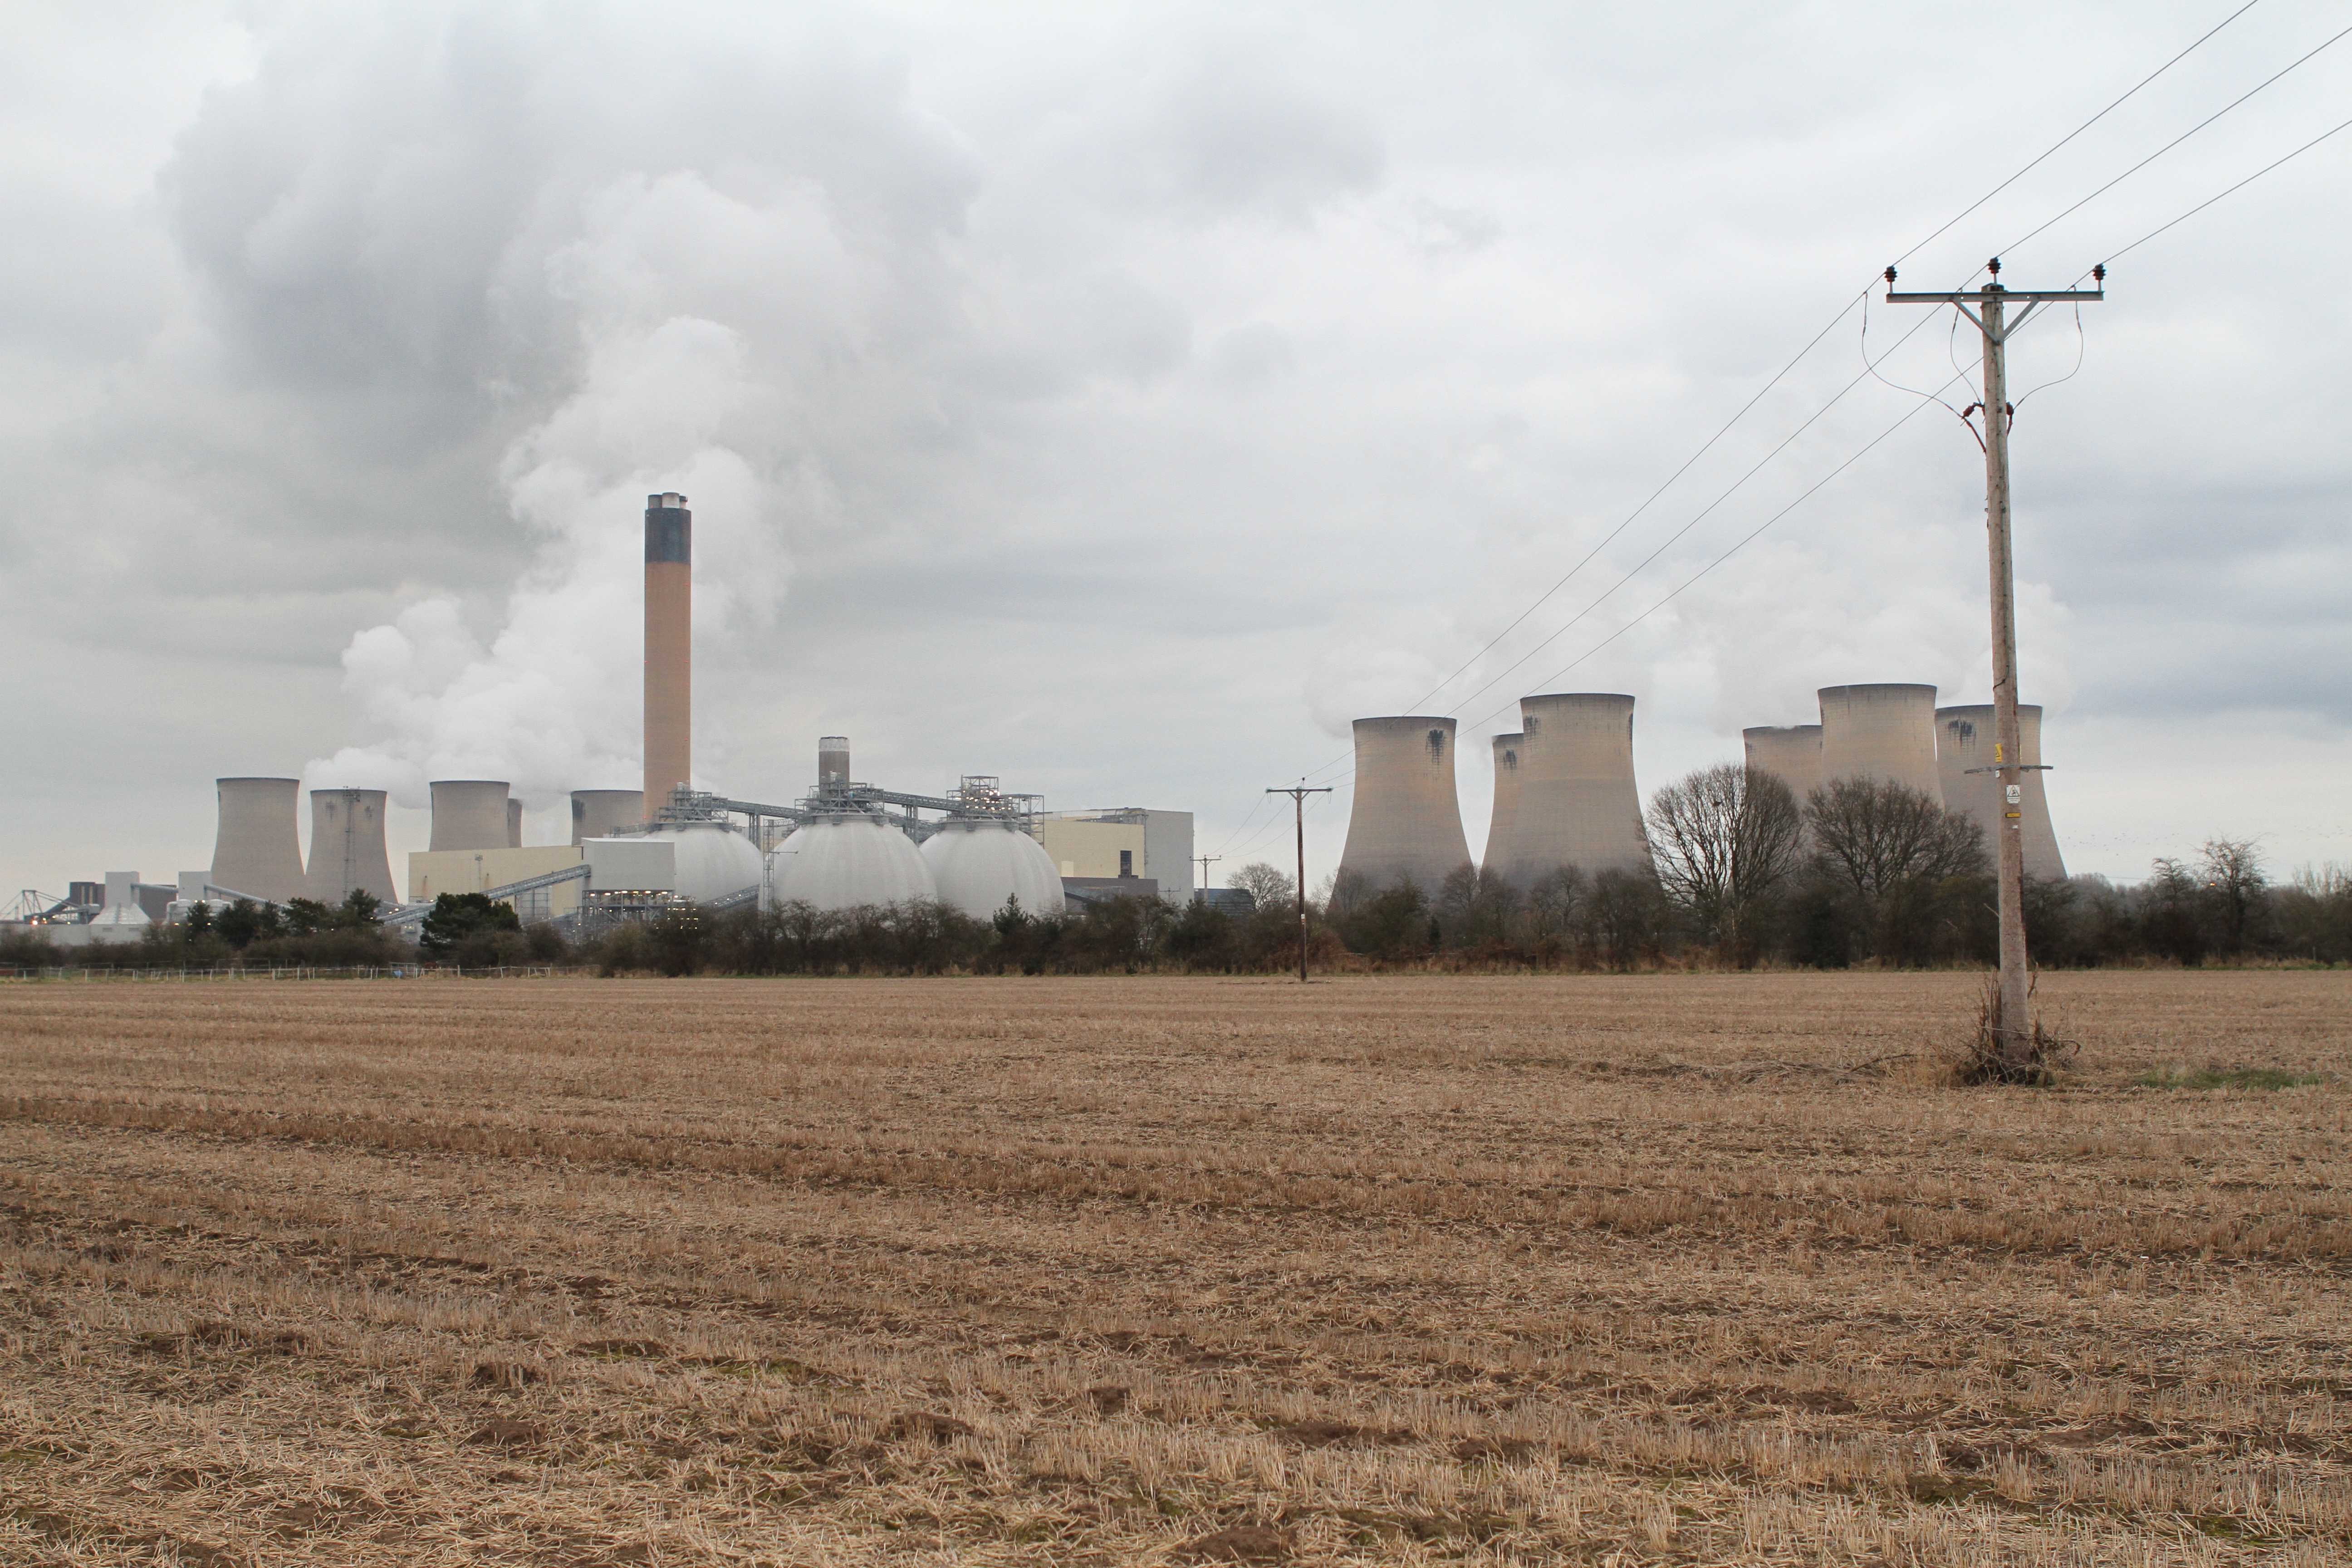 Drax power plant in Drax, England